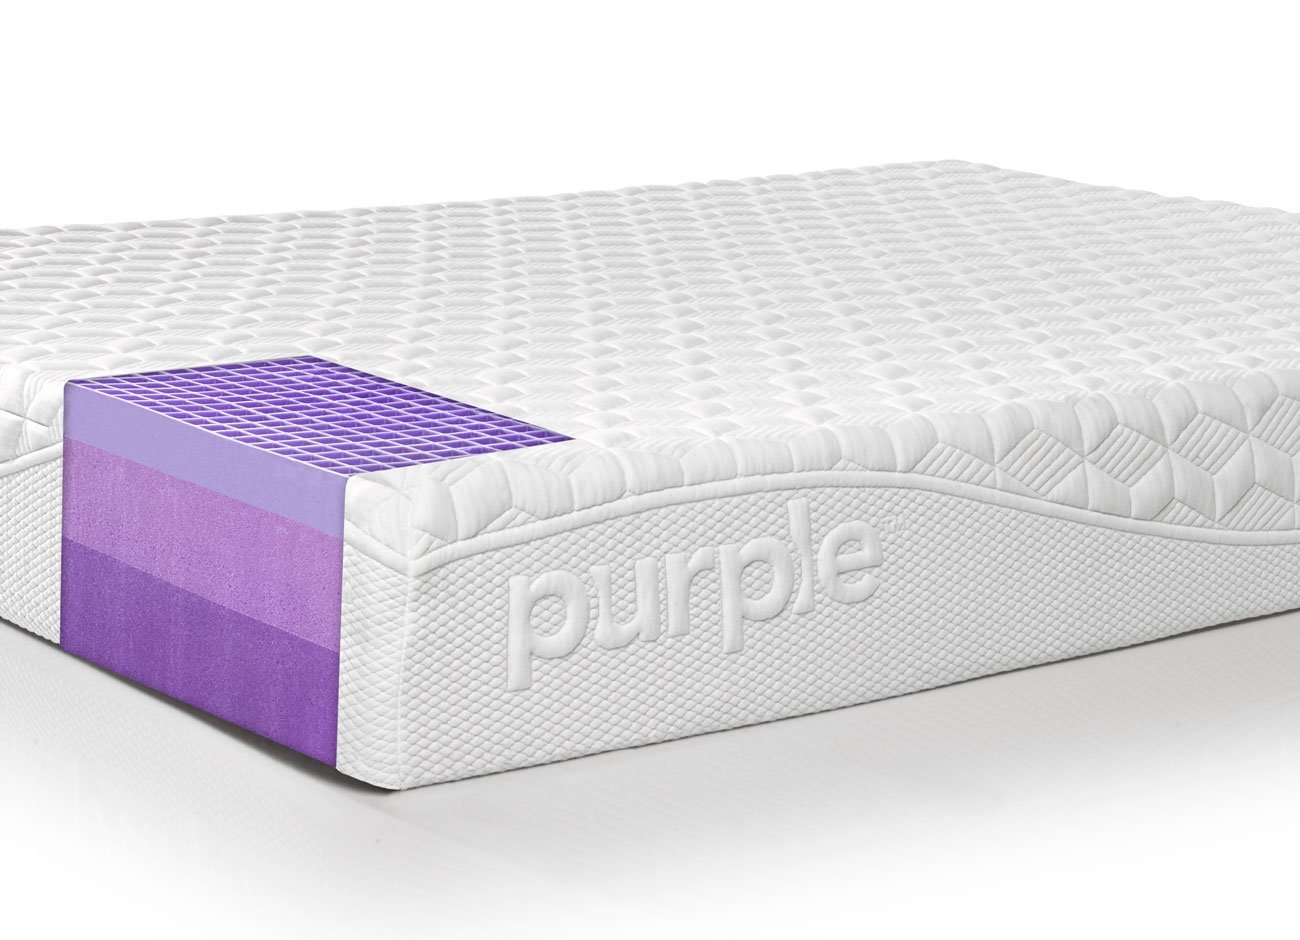 Quick Ending Goodbed Com Purple Mattress Giveaway 3 1